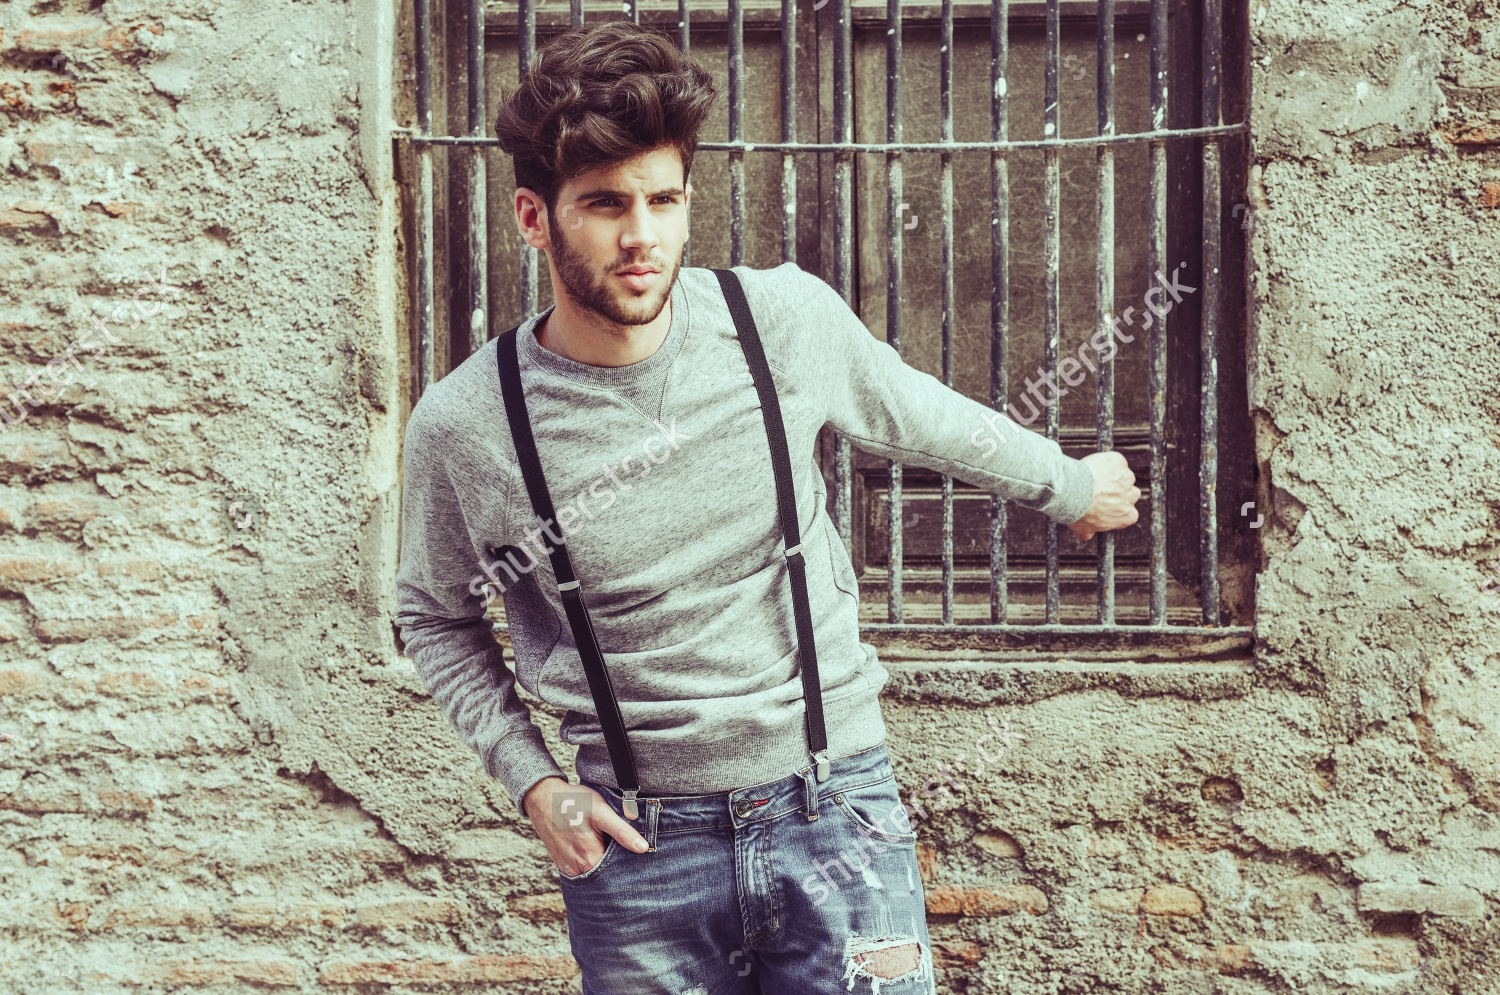 stock-photo-portrait-of-young-man-wearing-suspenders-in-urban-background-201562778.jpg